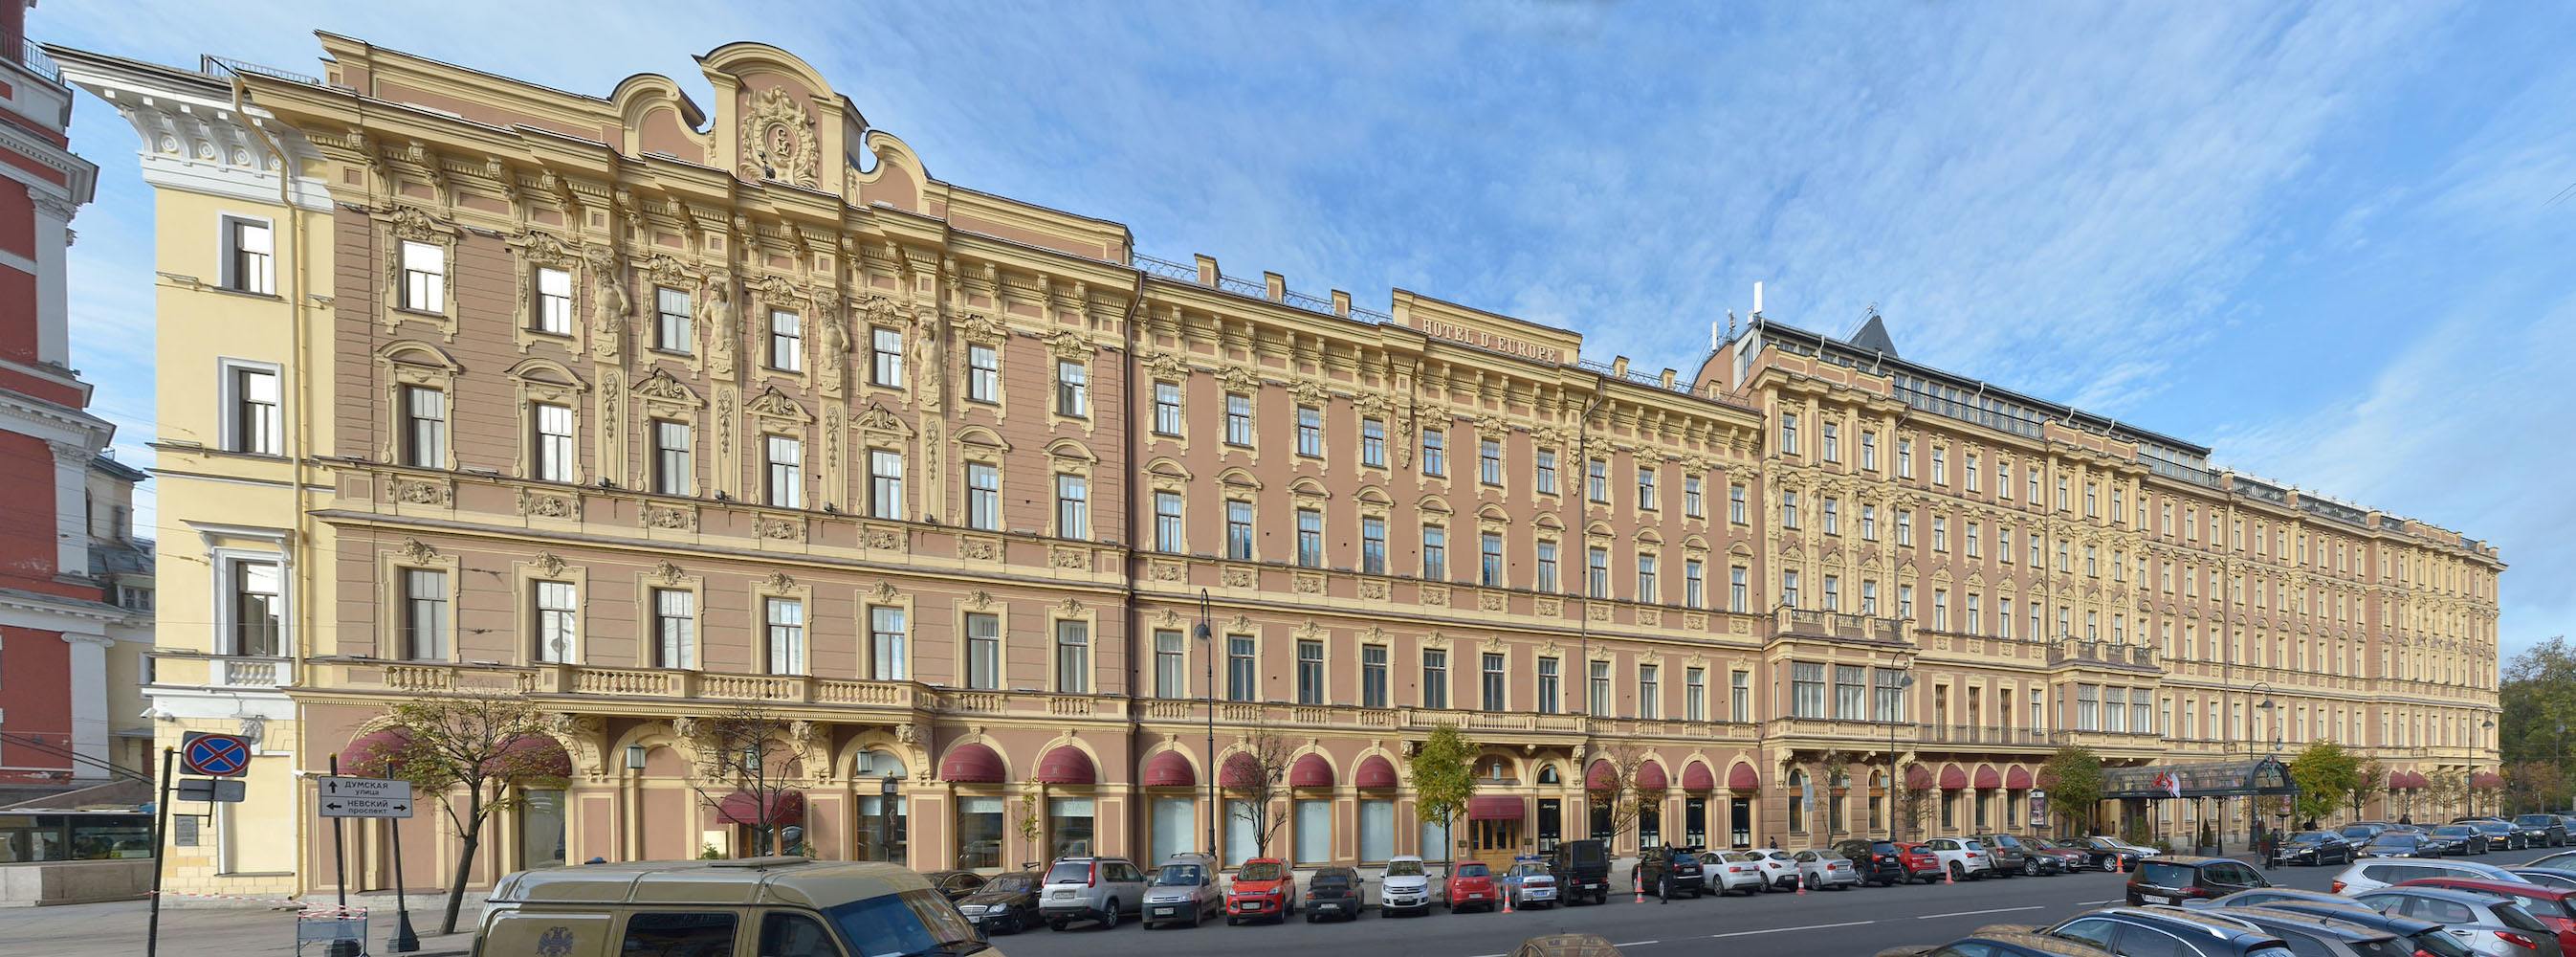 Belmond_Grand_Hotel_Europe_Saint_Petersburg_main_facade